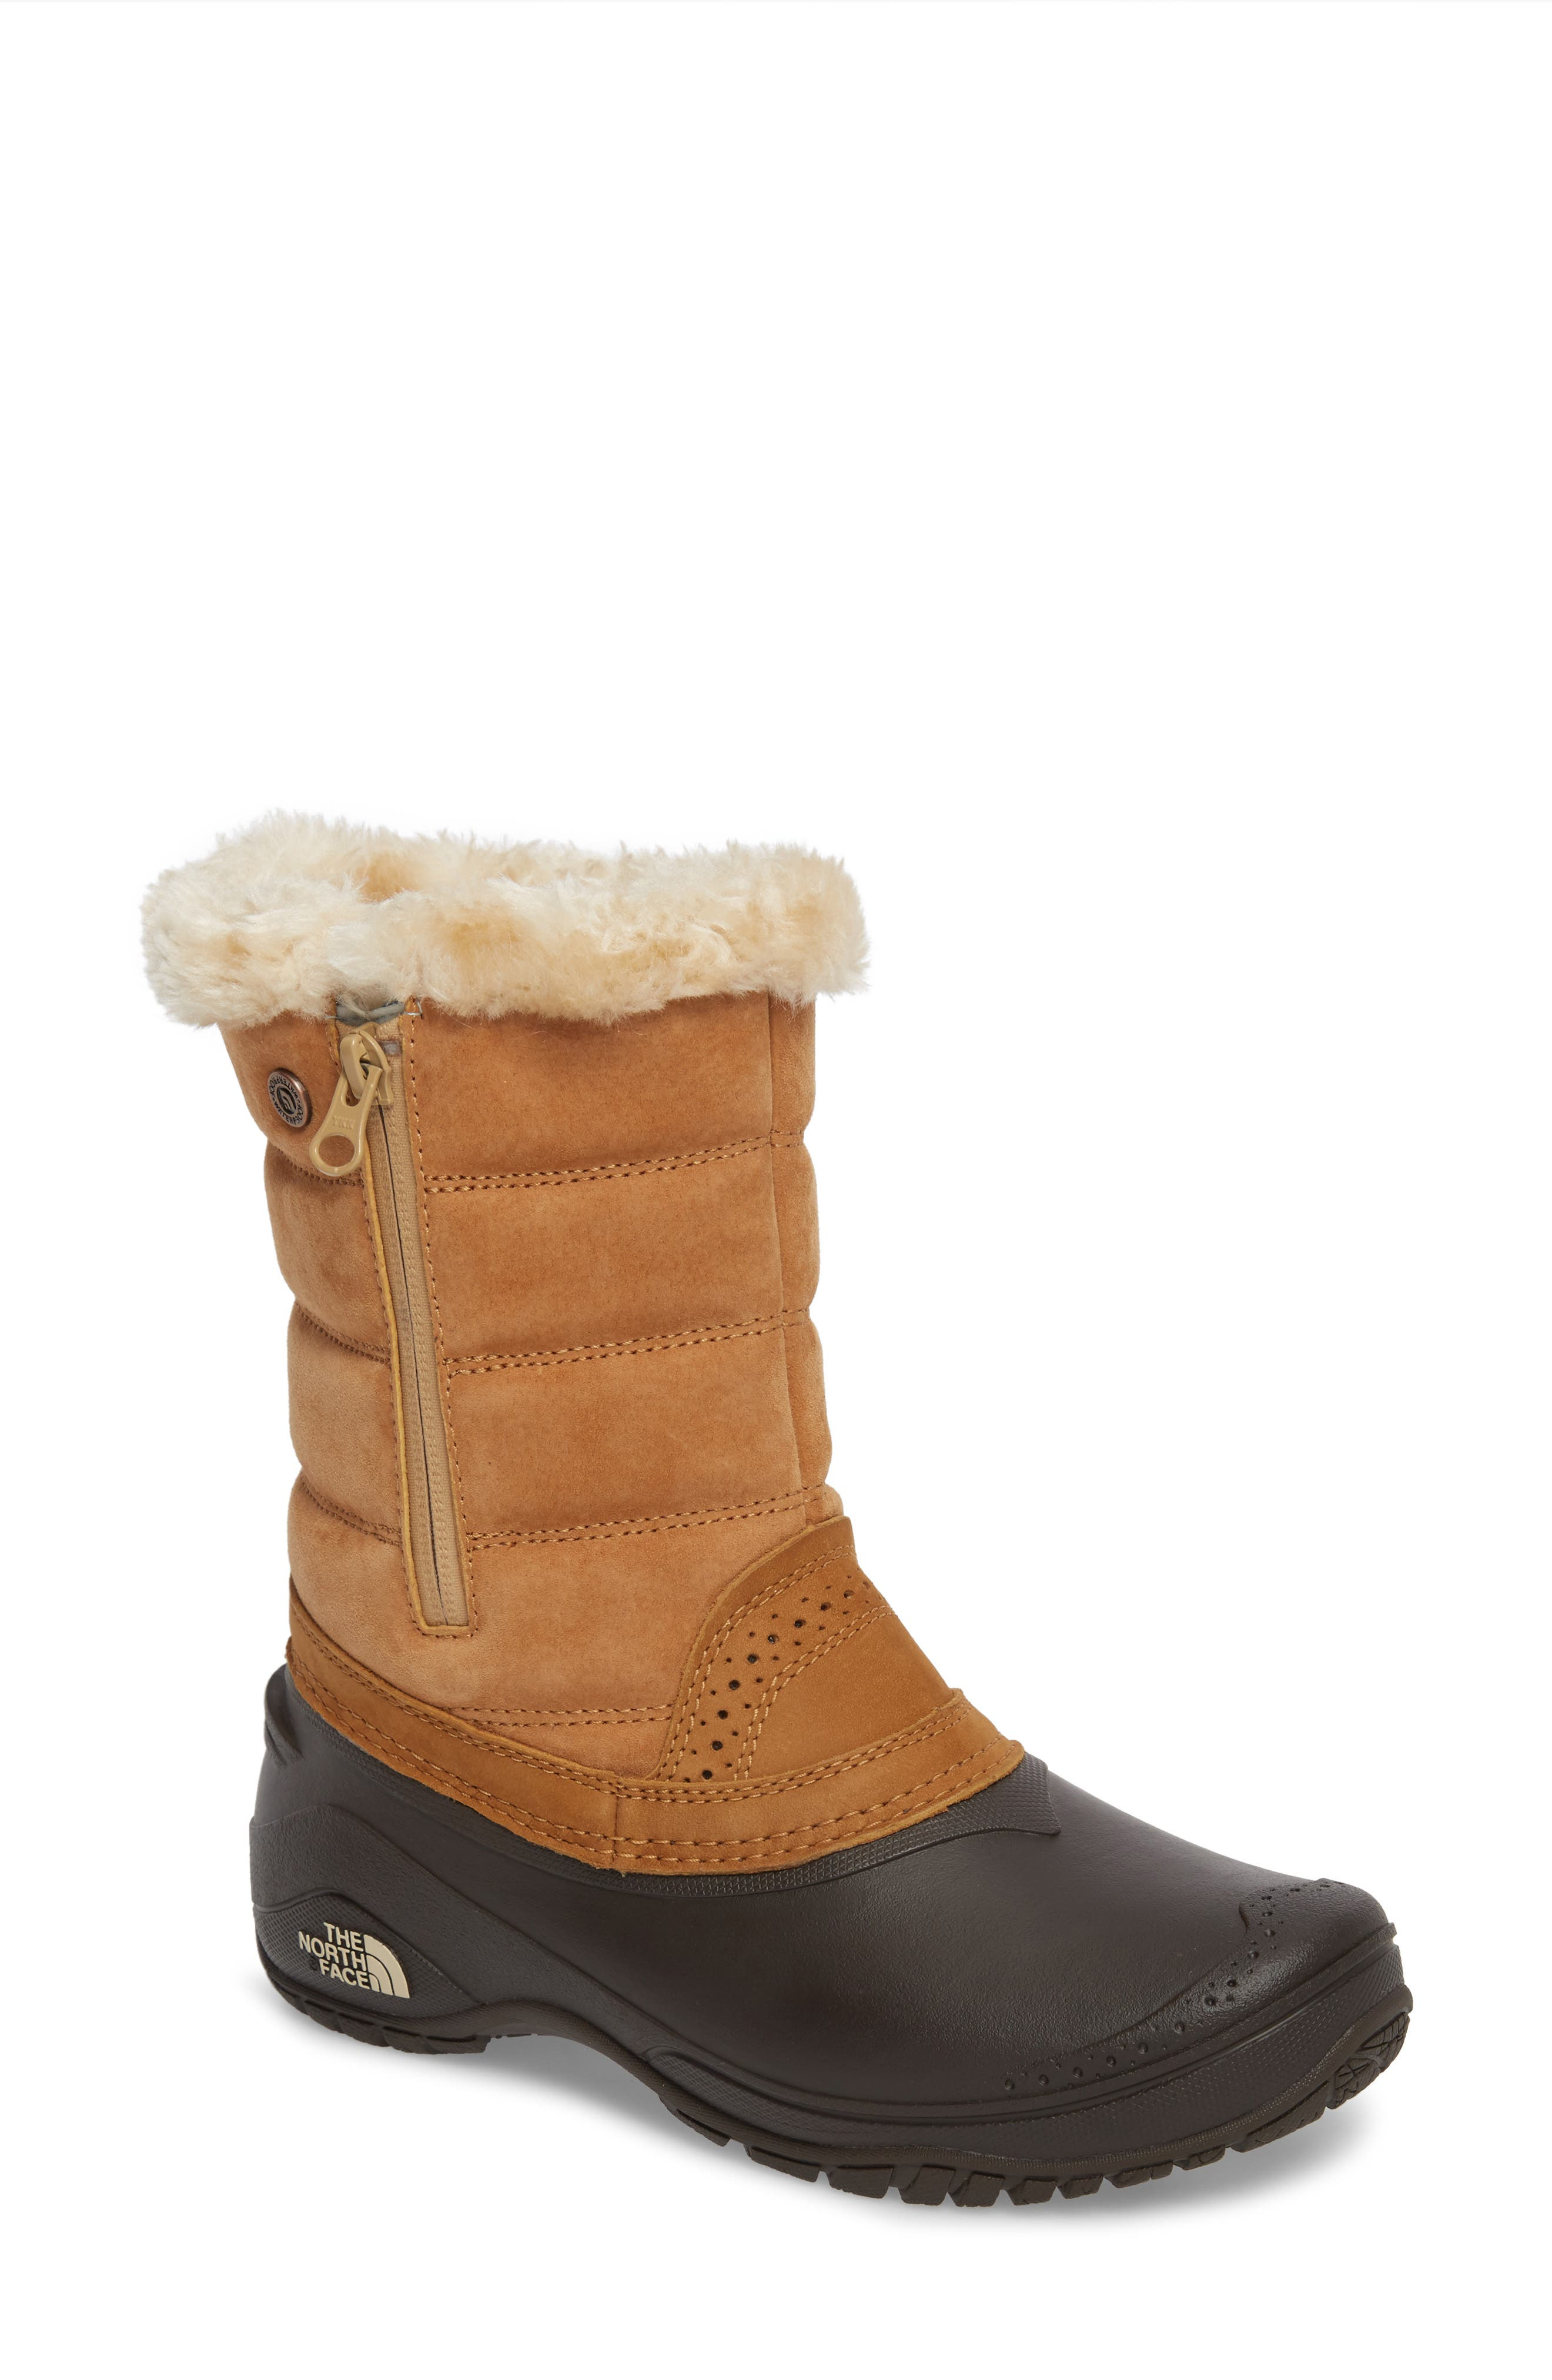 Alternate Image 1 Selected - The North Face Shellista III Waterproof Pull-On Snow Boot (Women)